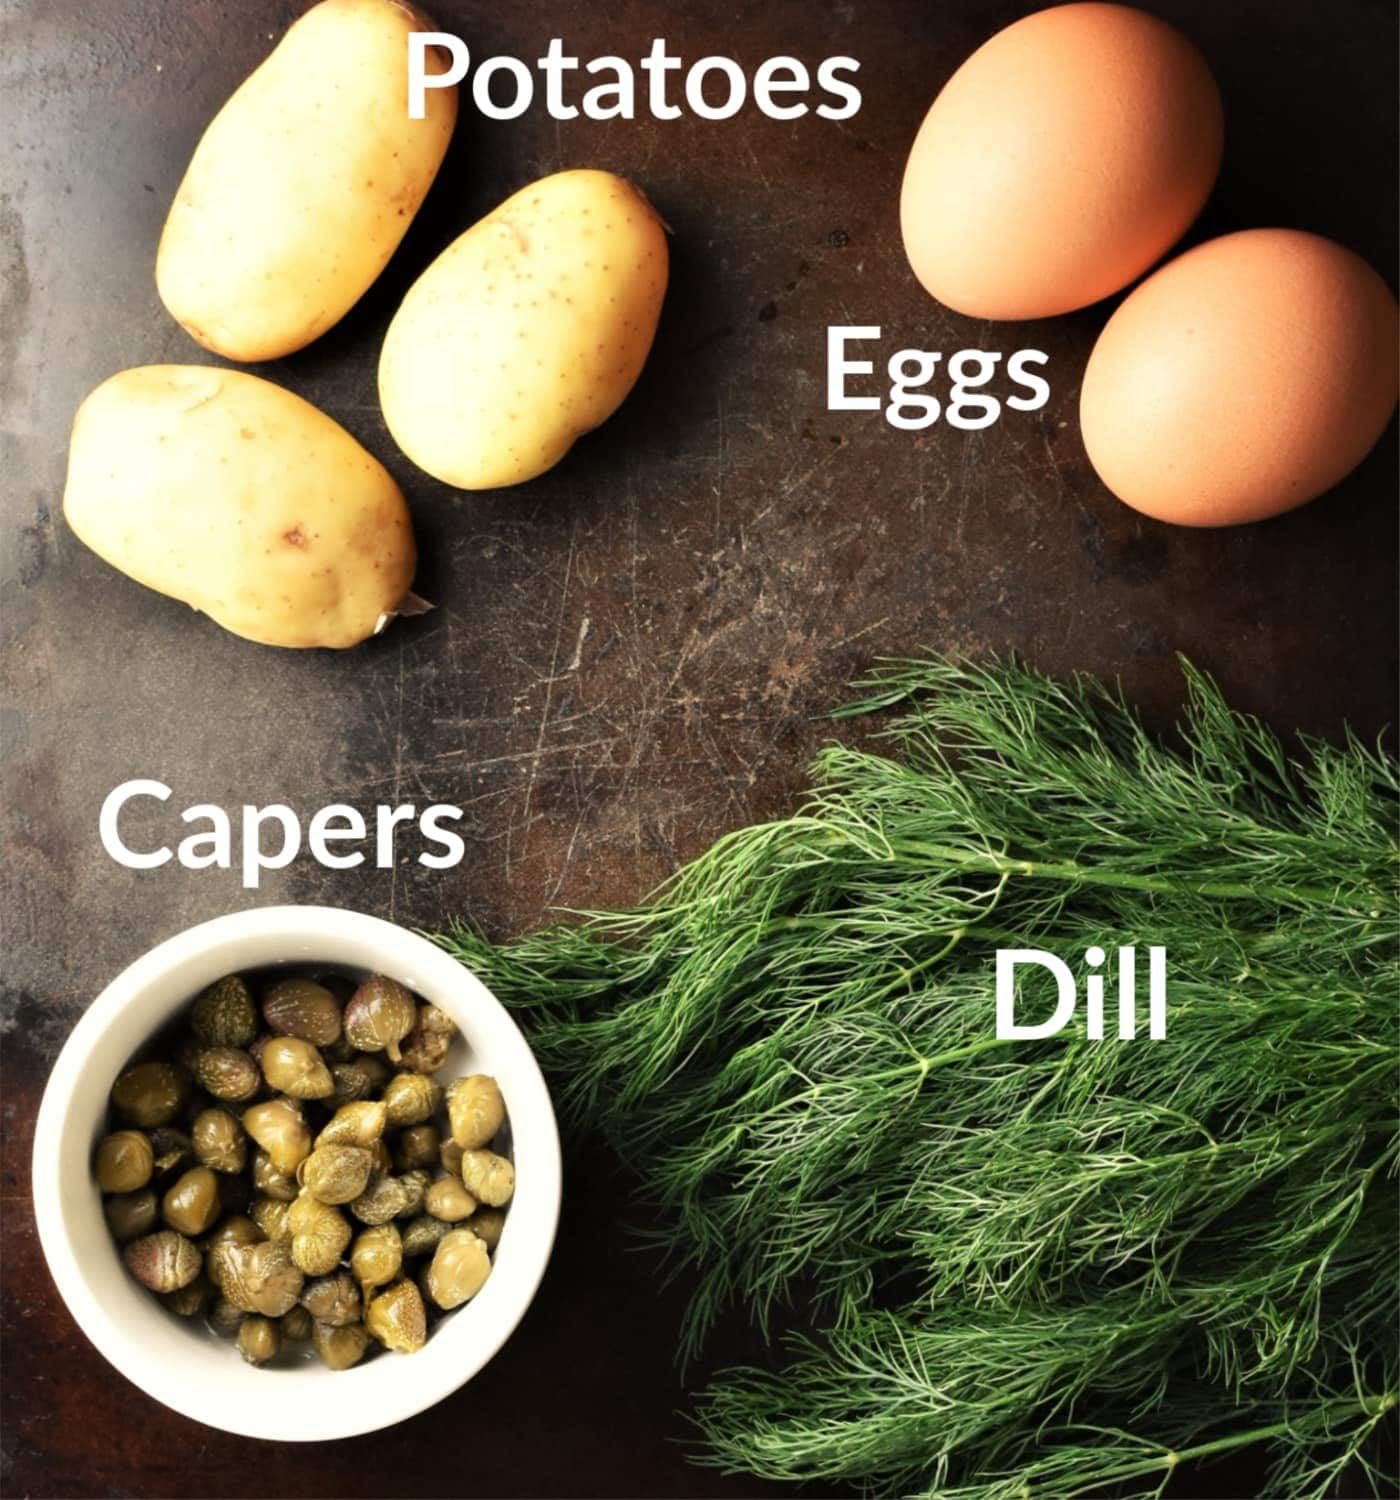 Potato dill salad ingredients on top of black surface.